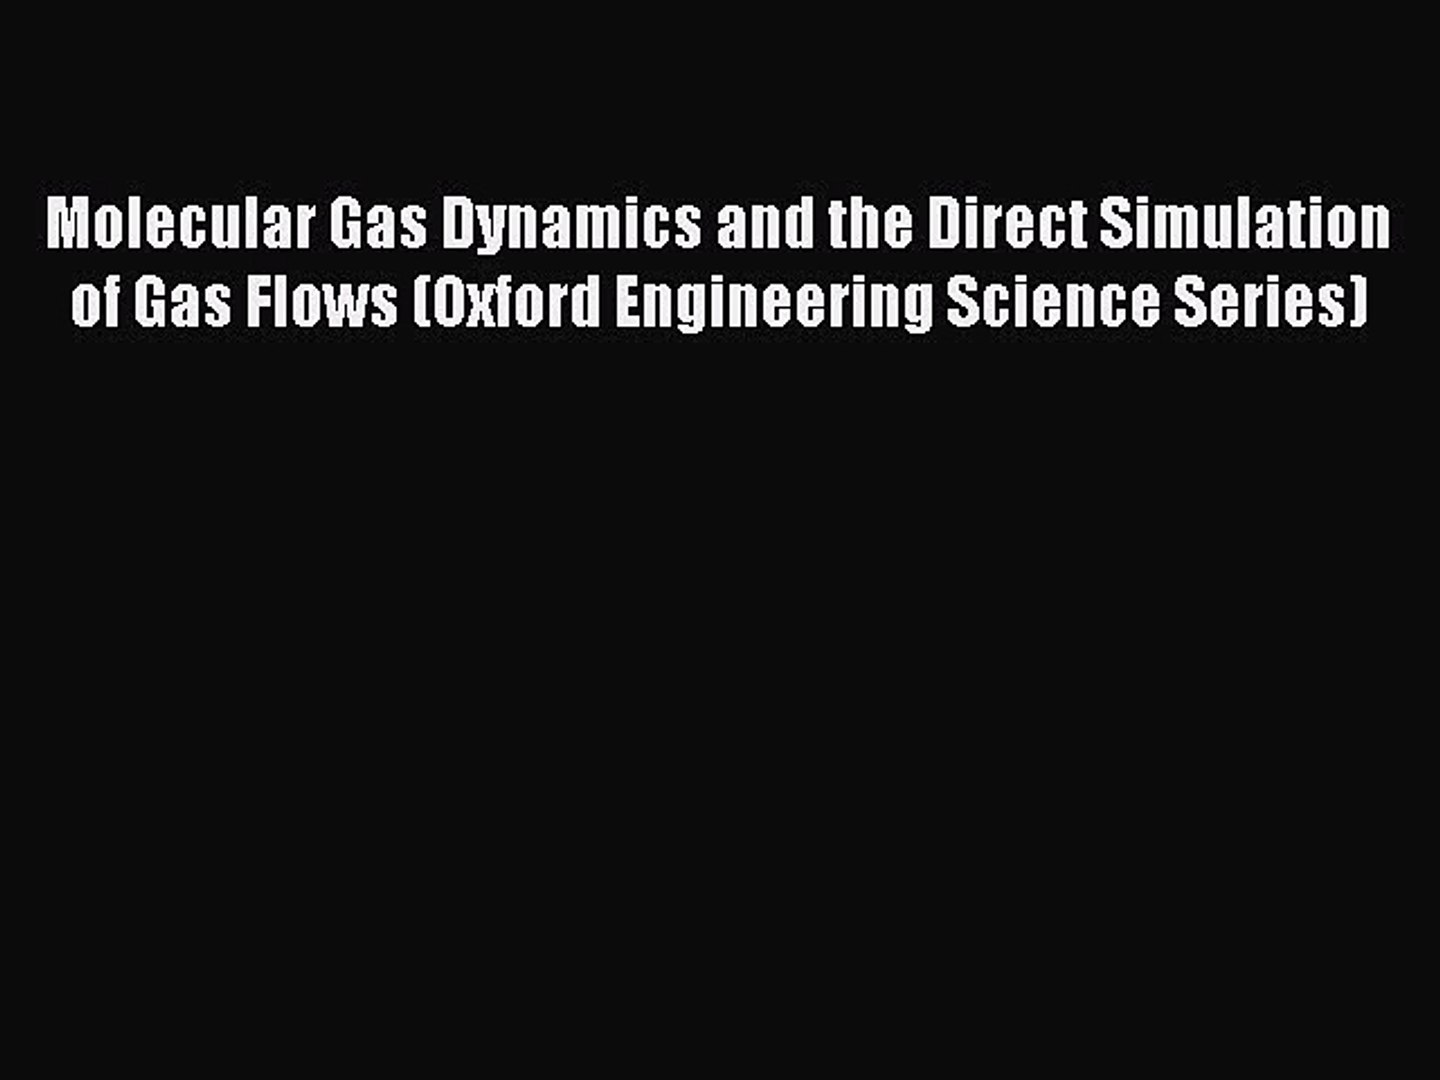 Molecular Gas Dynamics and the Direct Simulation of Gas Flows